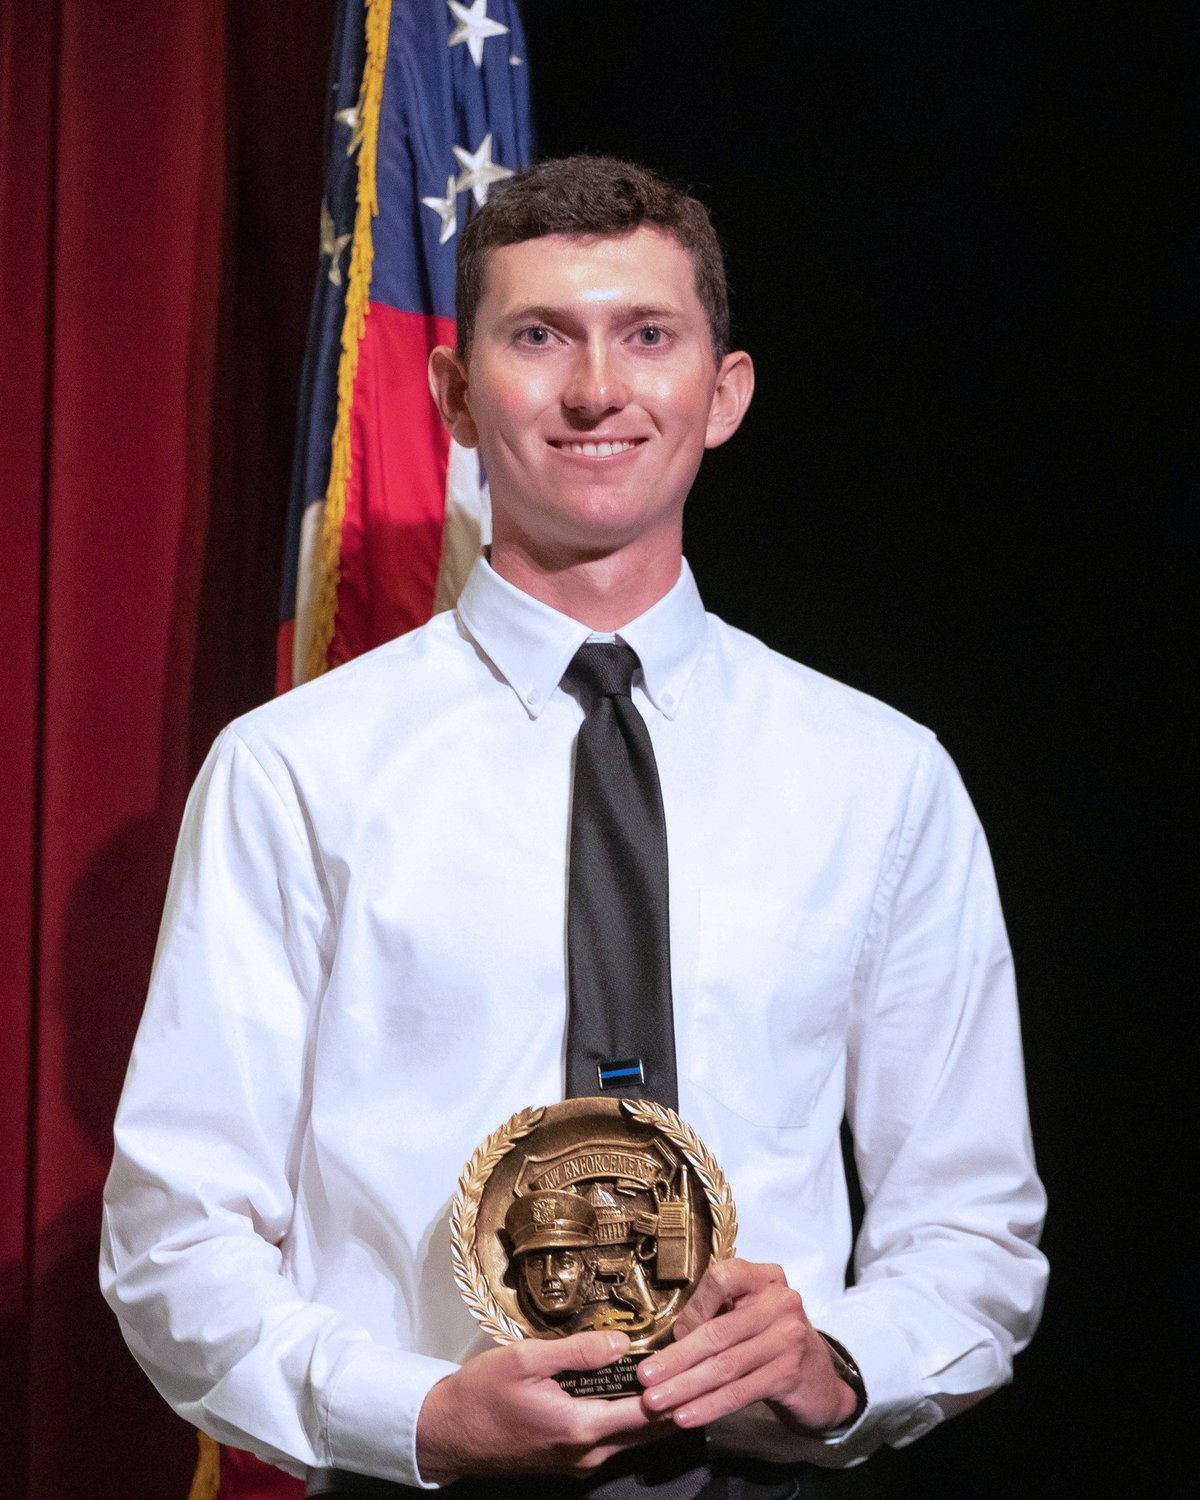 Hunter Walker of La Grange won the Physical Fitness Award for the 76th BLET class that graduated from Wayne Community College.